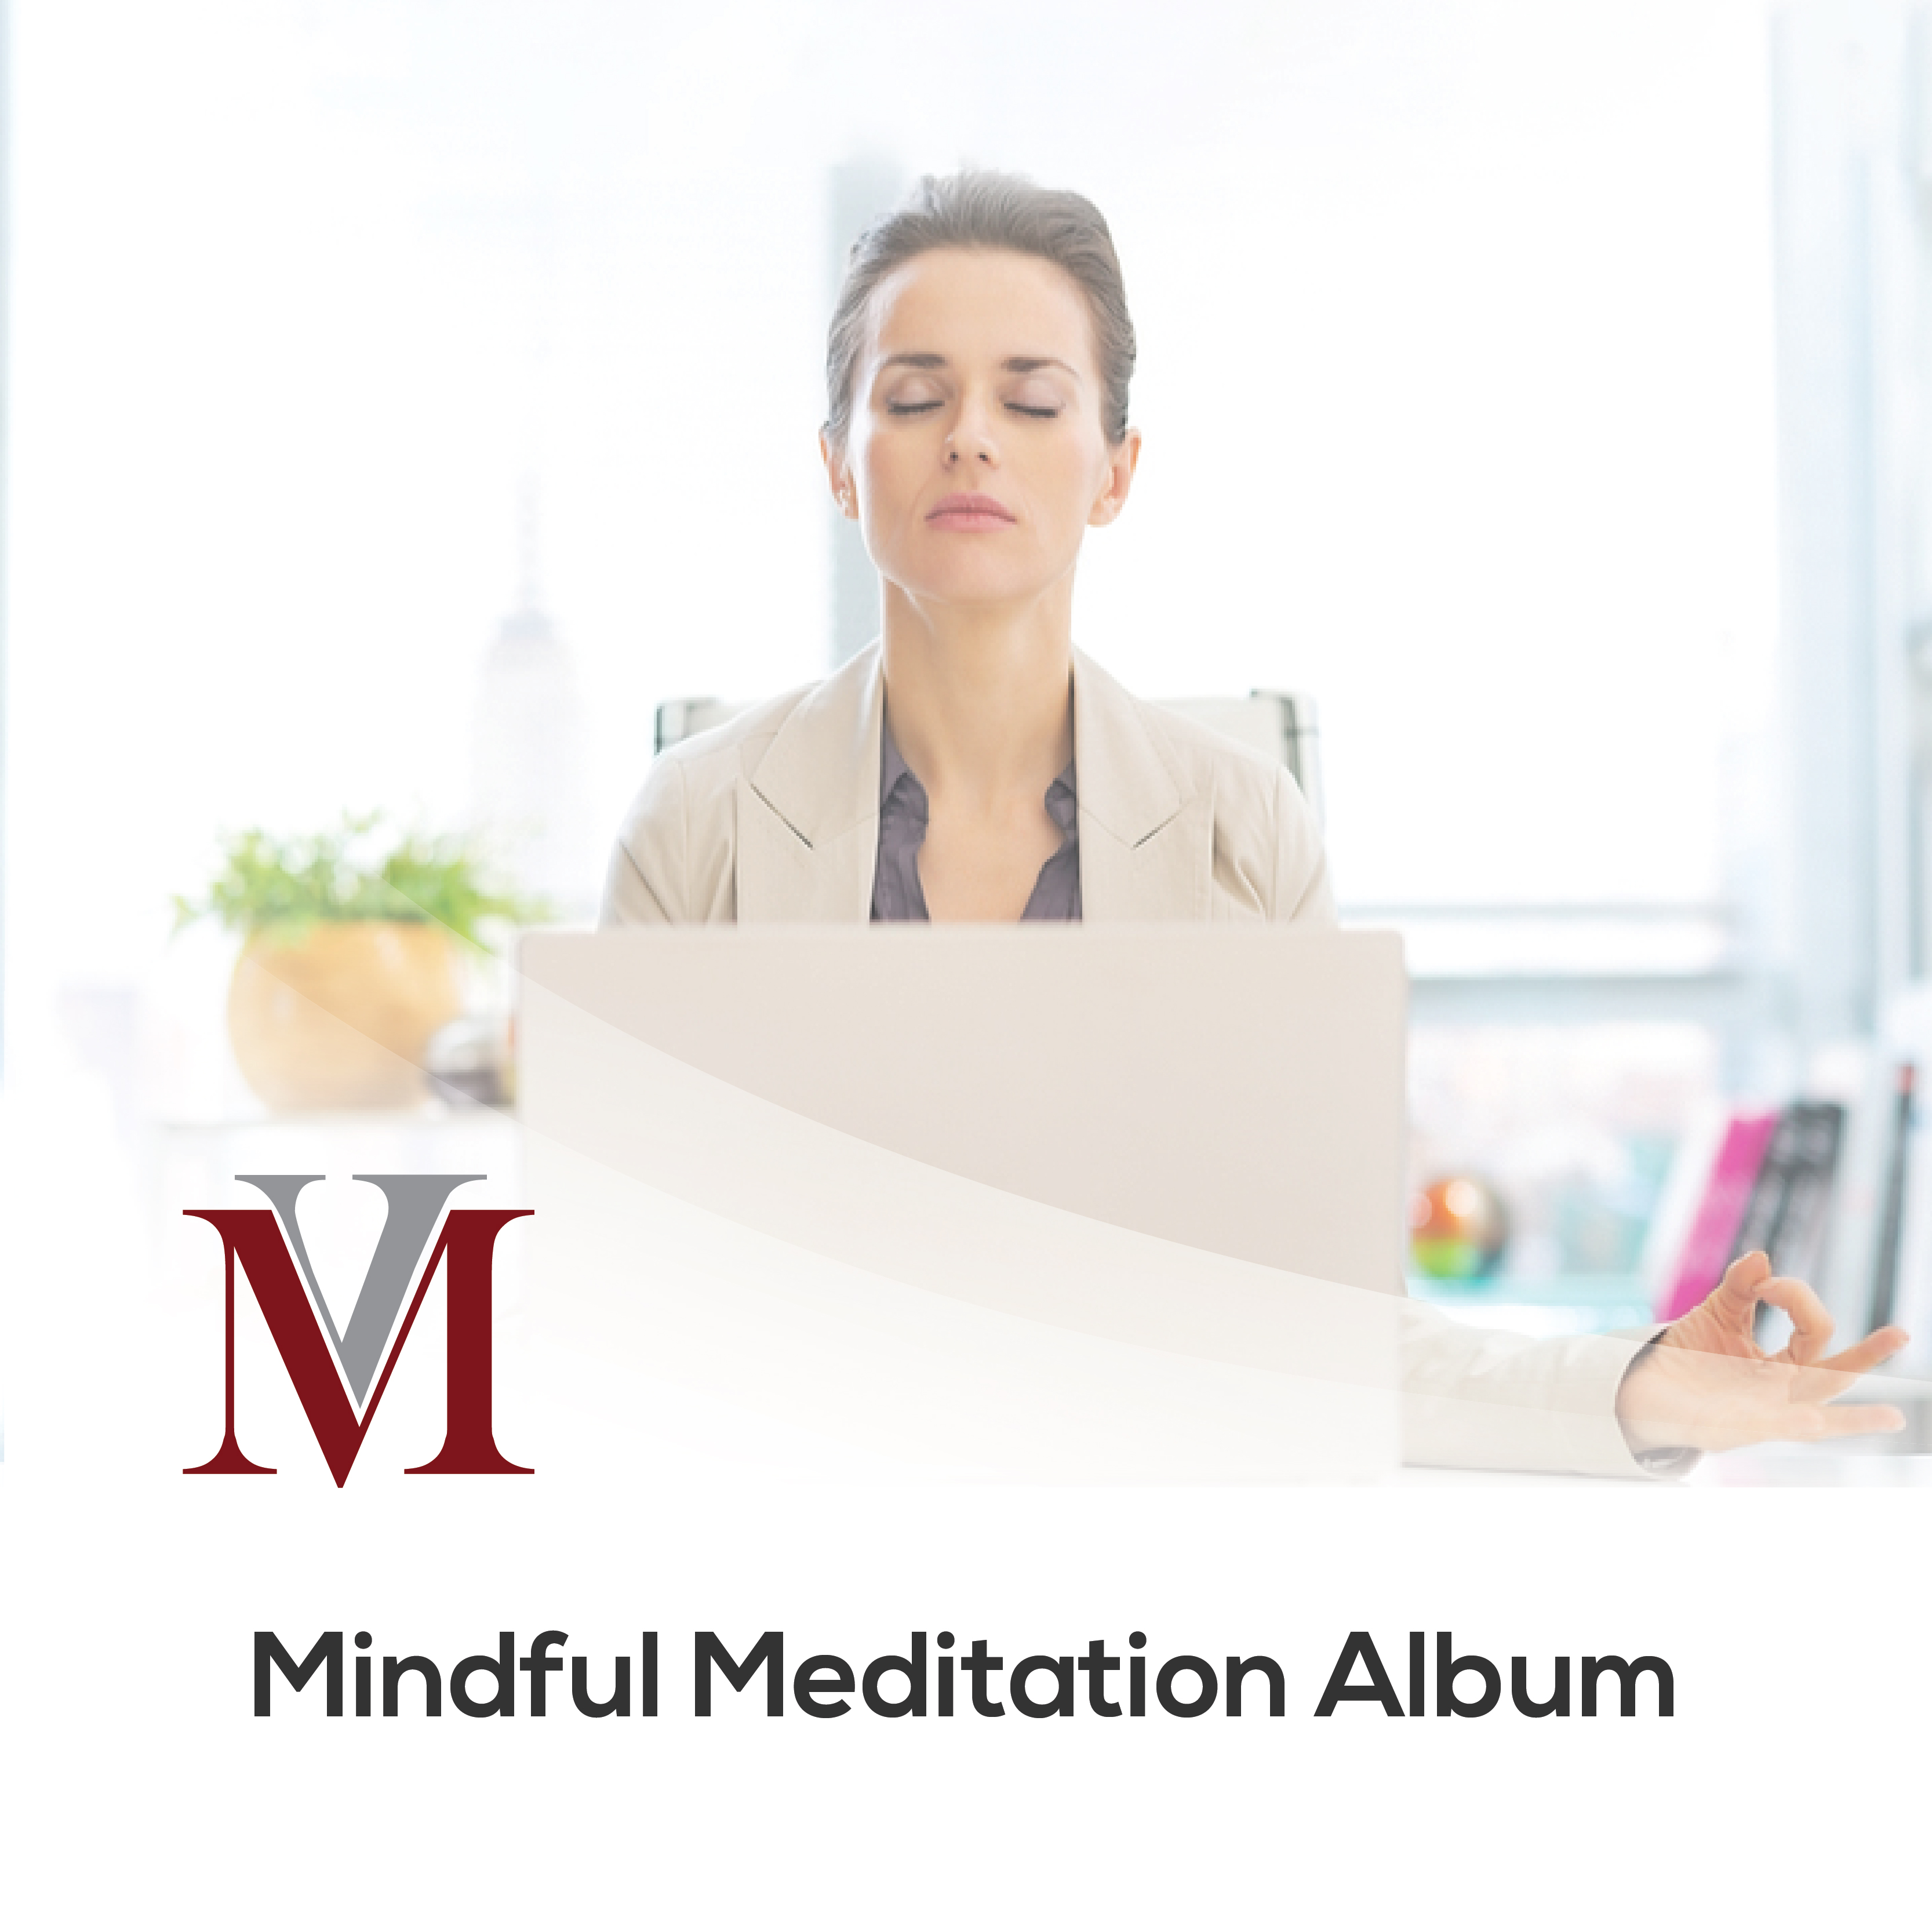 Mindful Meditation Album